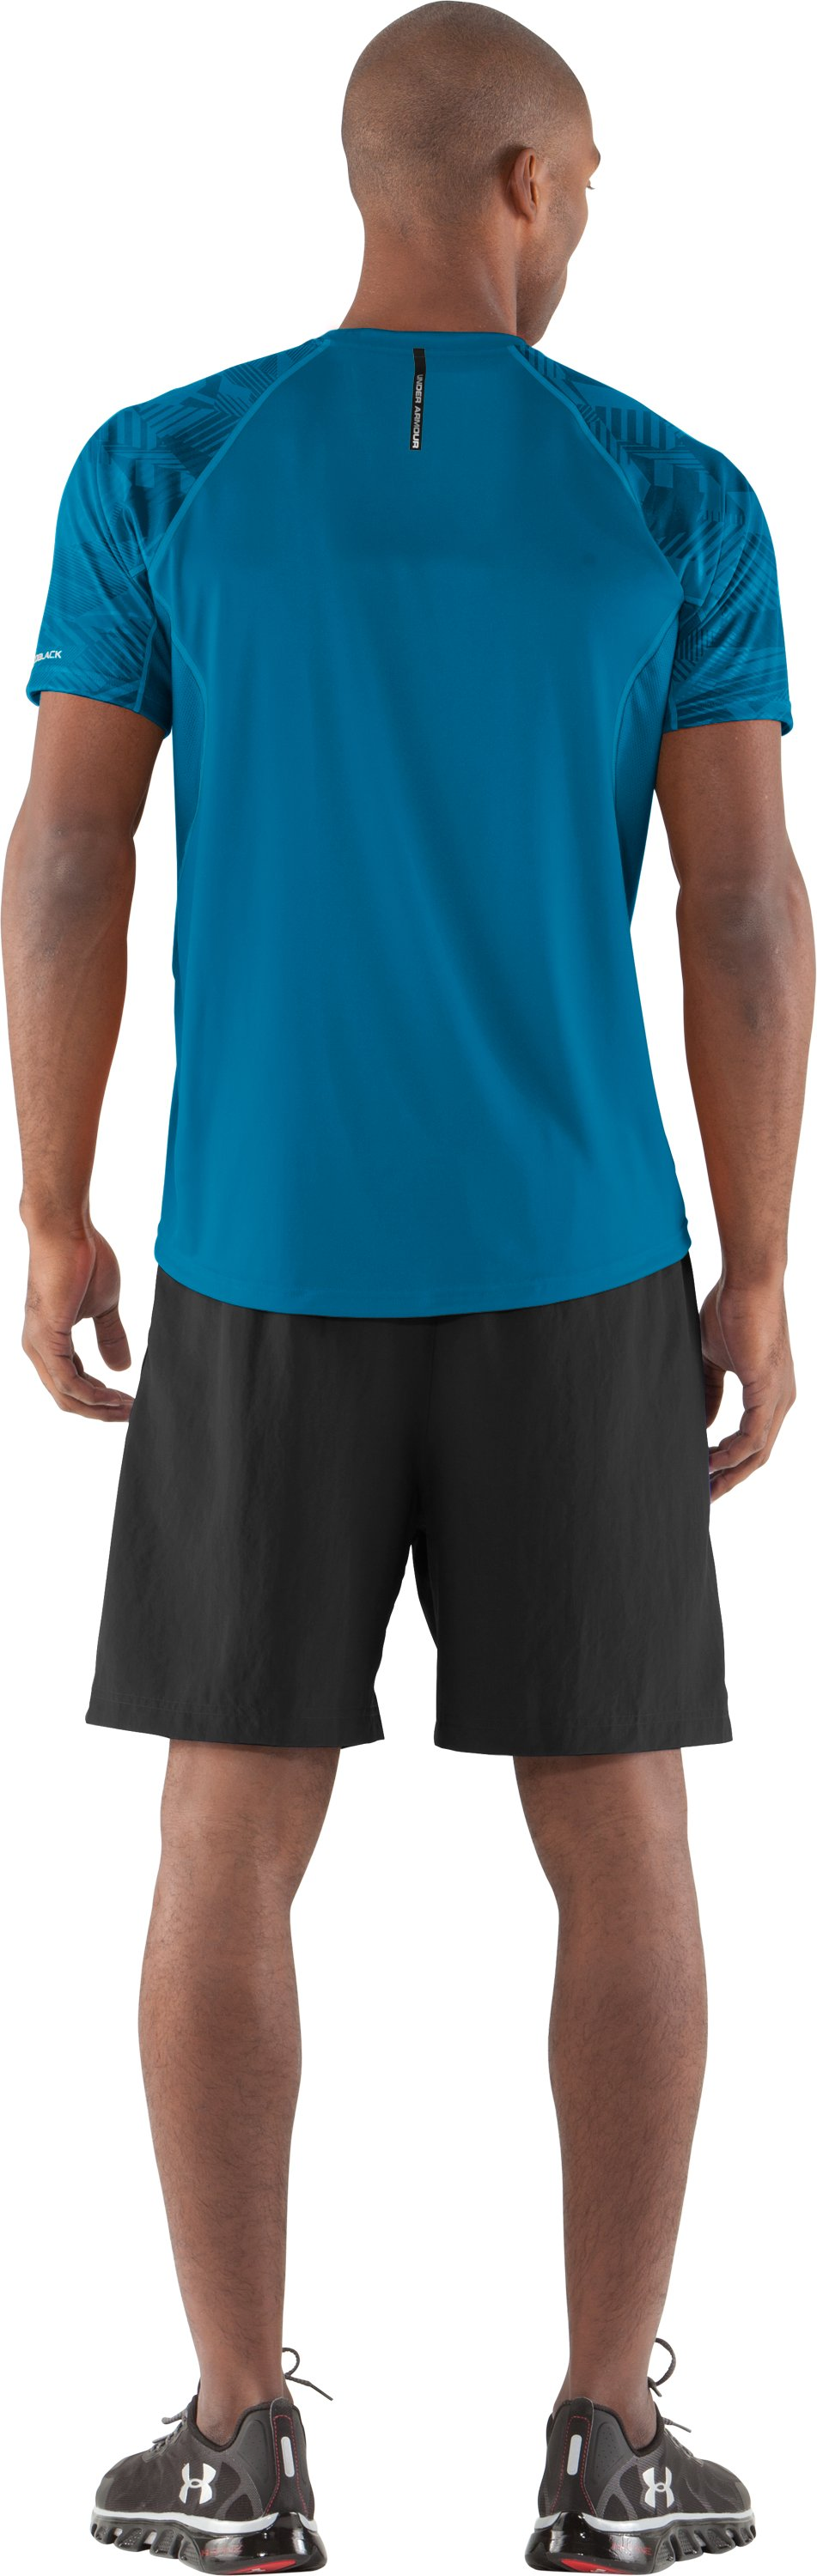 Men's coldblack® Engage Run T-Shirt, SNORKEL, Back